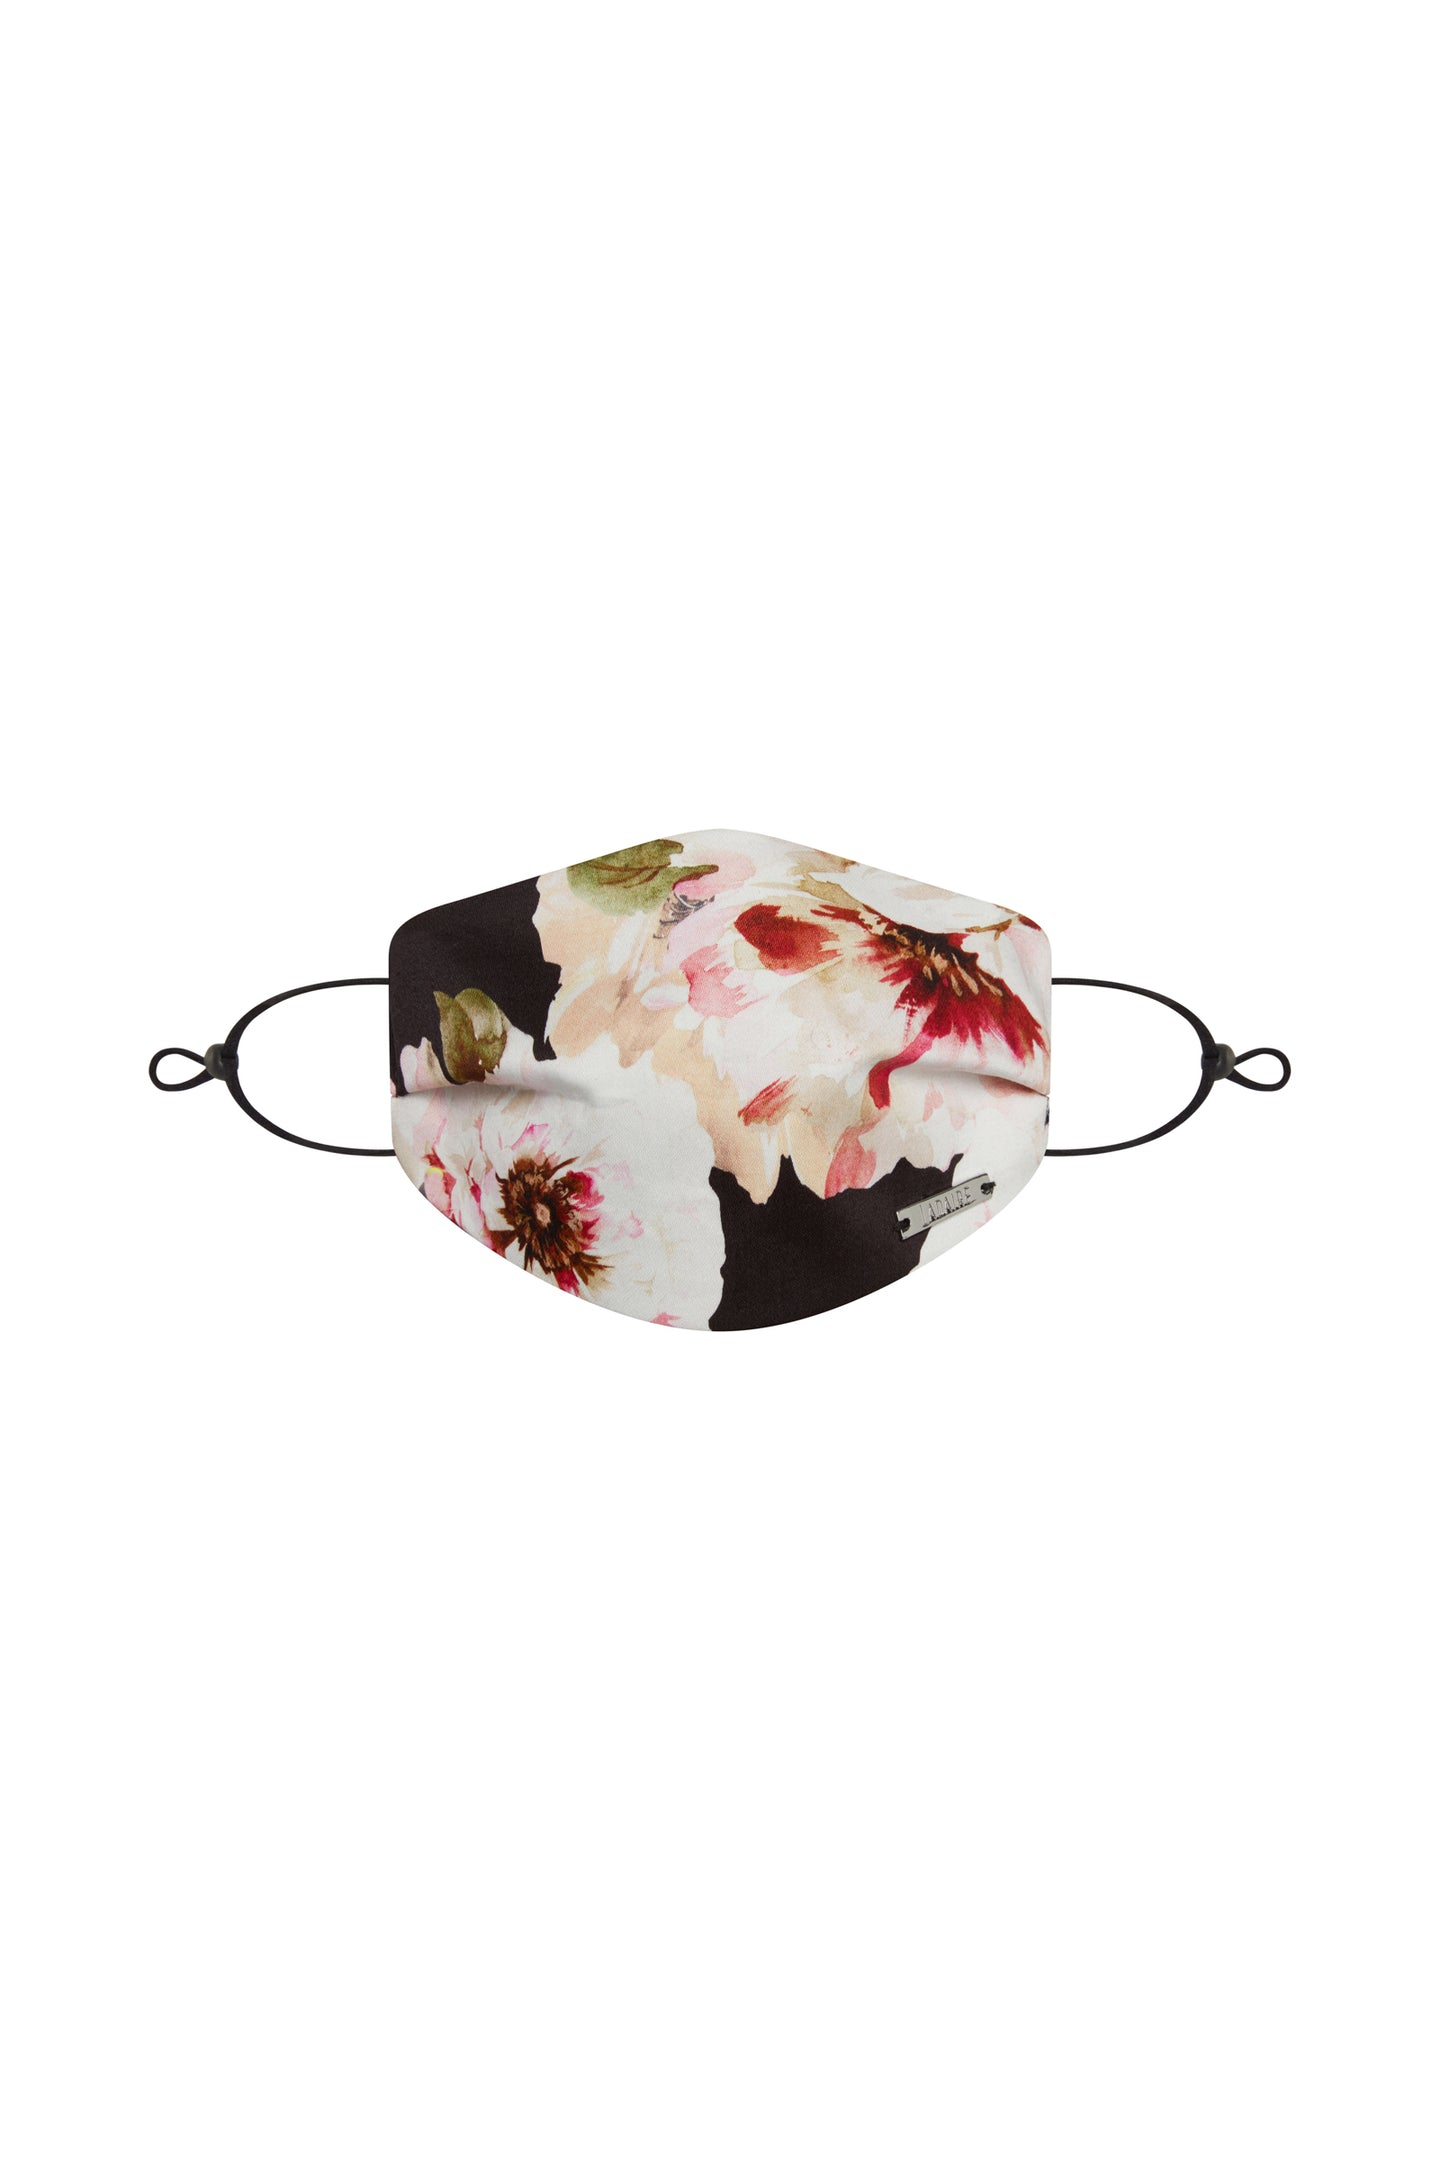 Small Floral Silk / Cotton Face Mask with Filter Pocket and Adjustable Straps